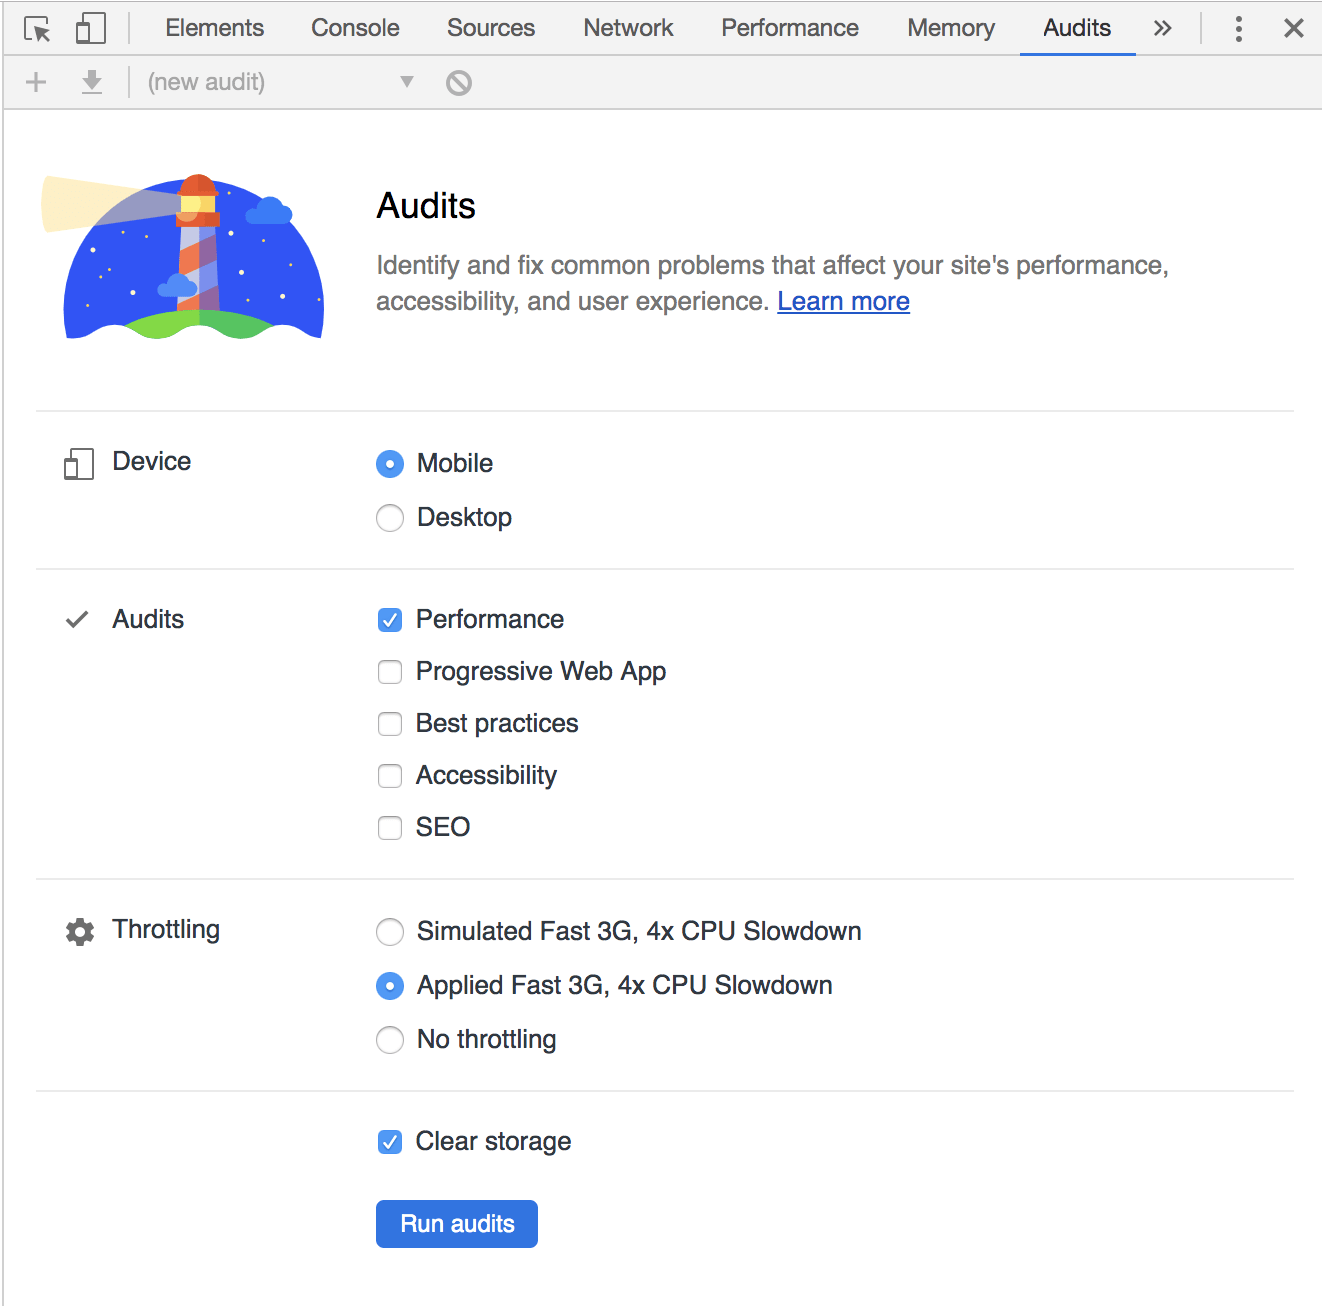 Audits Tab Contents In Chrome DevTools